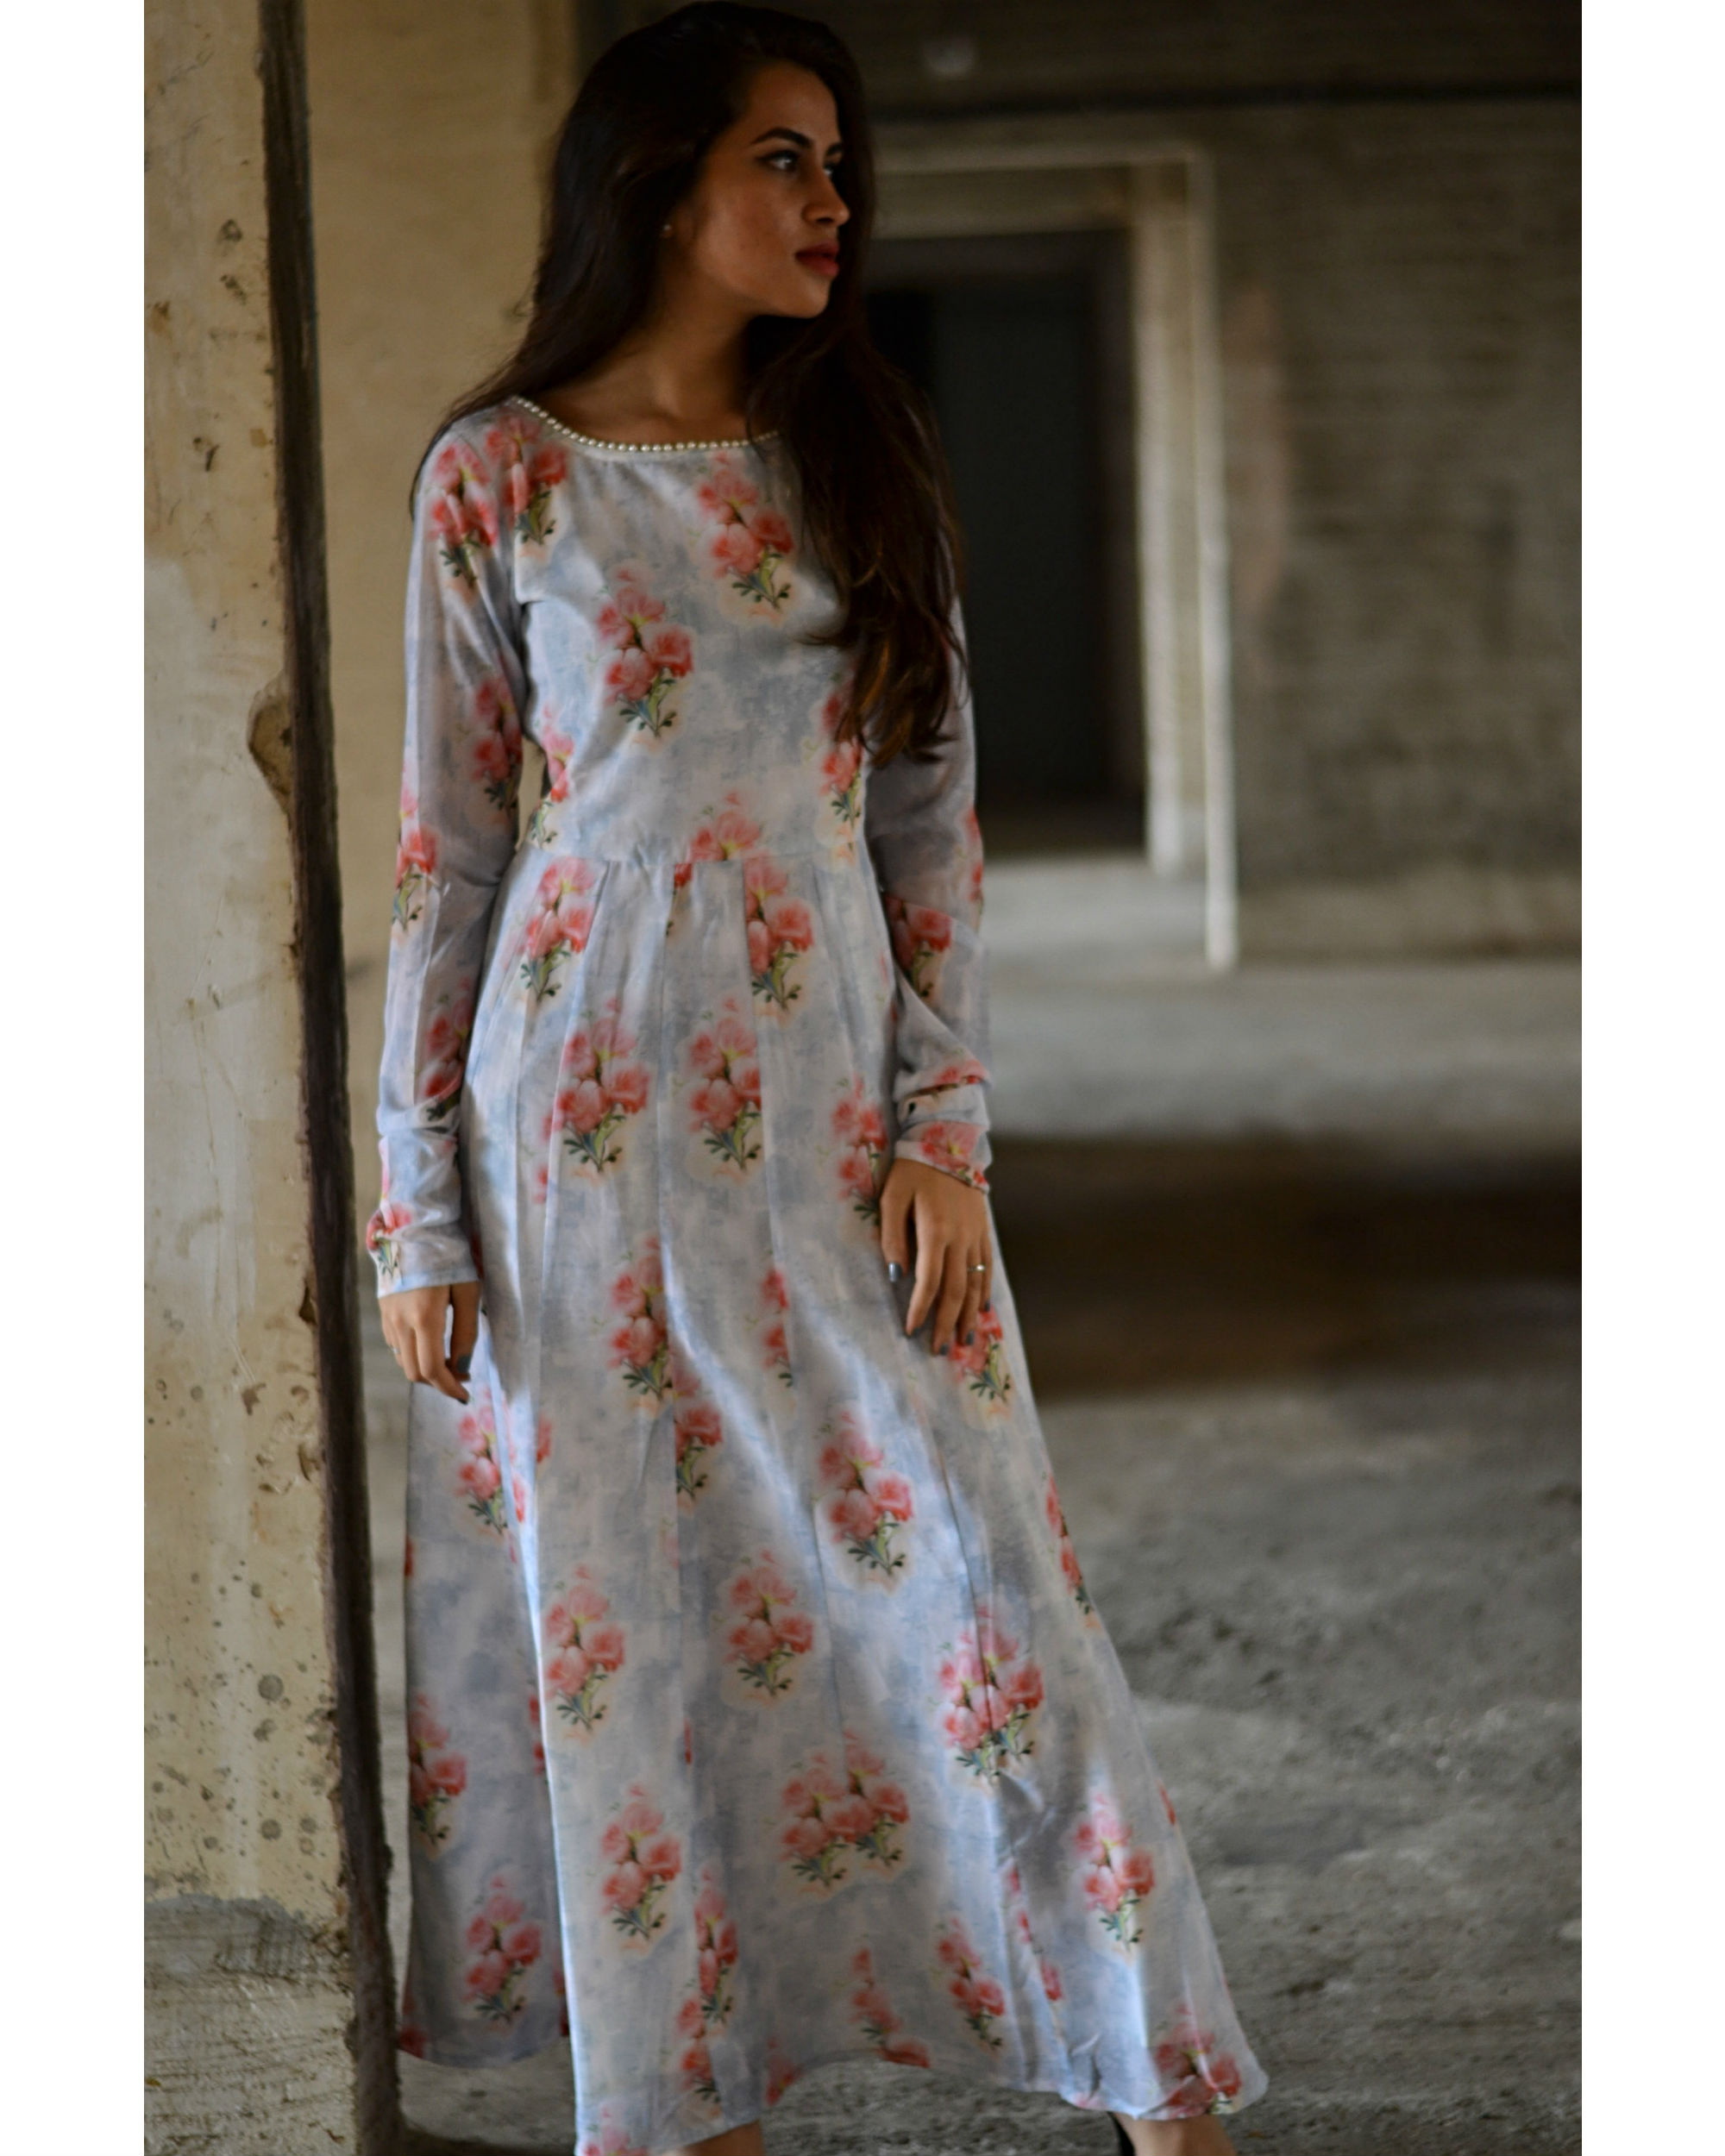 Pale grey and red floral maxi dress